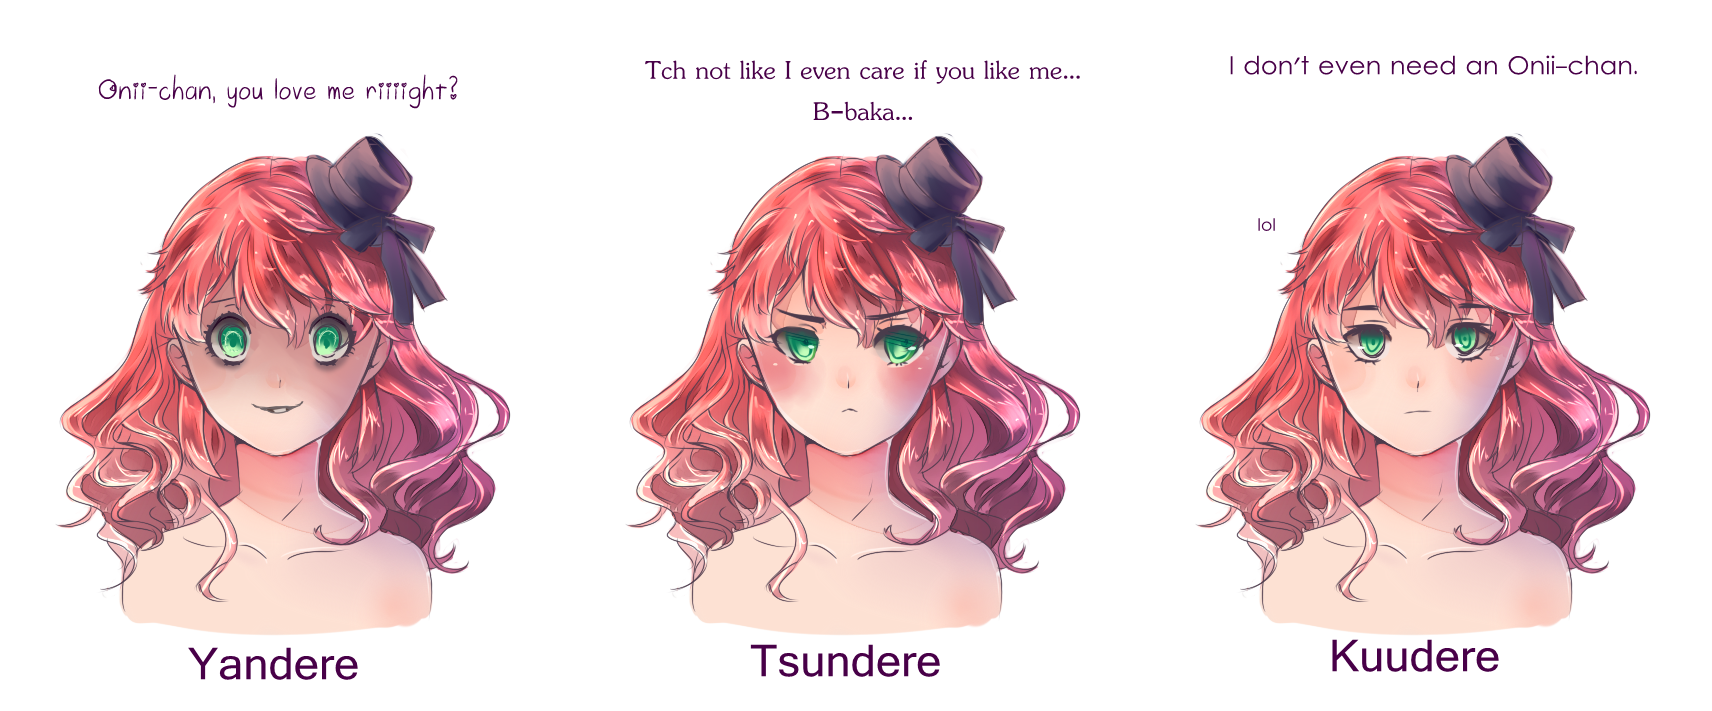 Yandere tsundere and kuudere by luumies on deviantart luumies yandere tsundere and kuudere by luumies ccuart Image collections